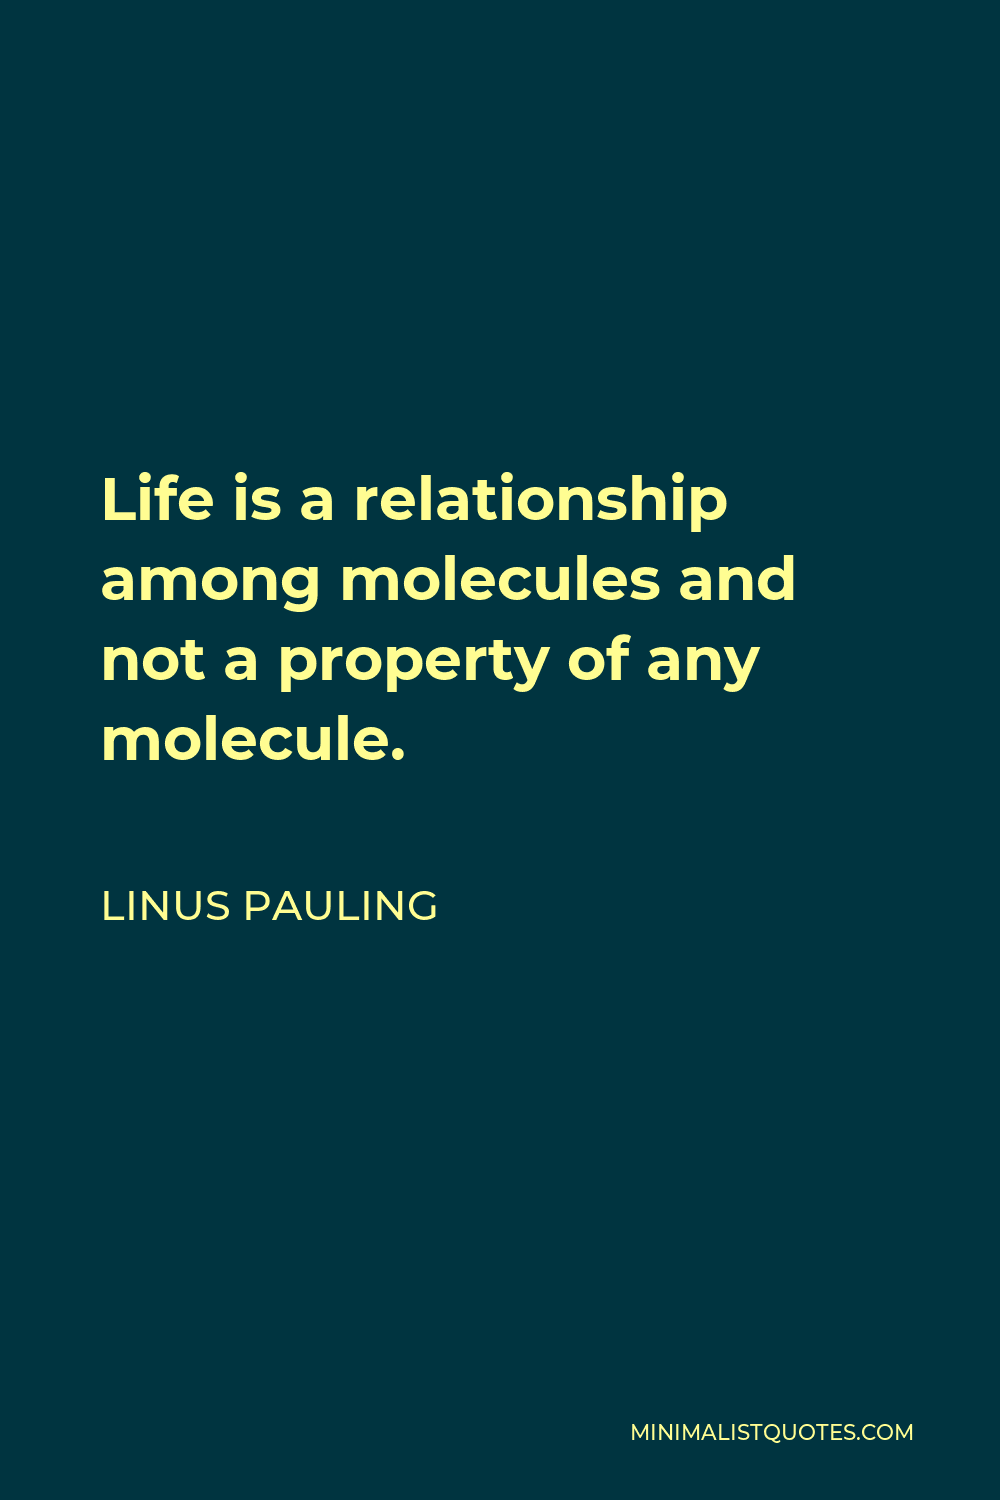 Linus Pauling Quote - Life is a relationship among molecules and not a property of any molecule.